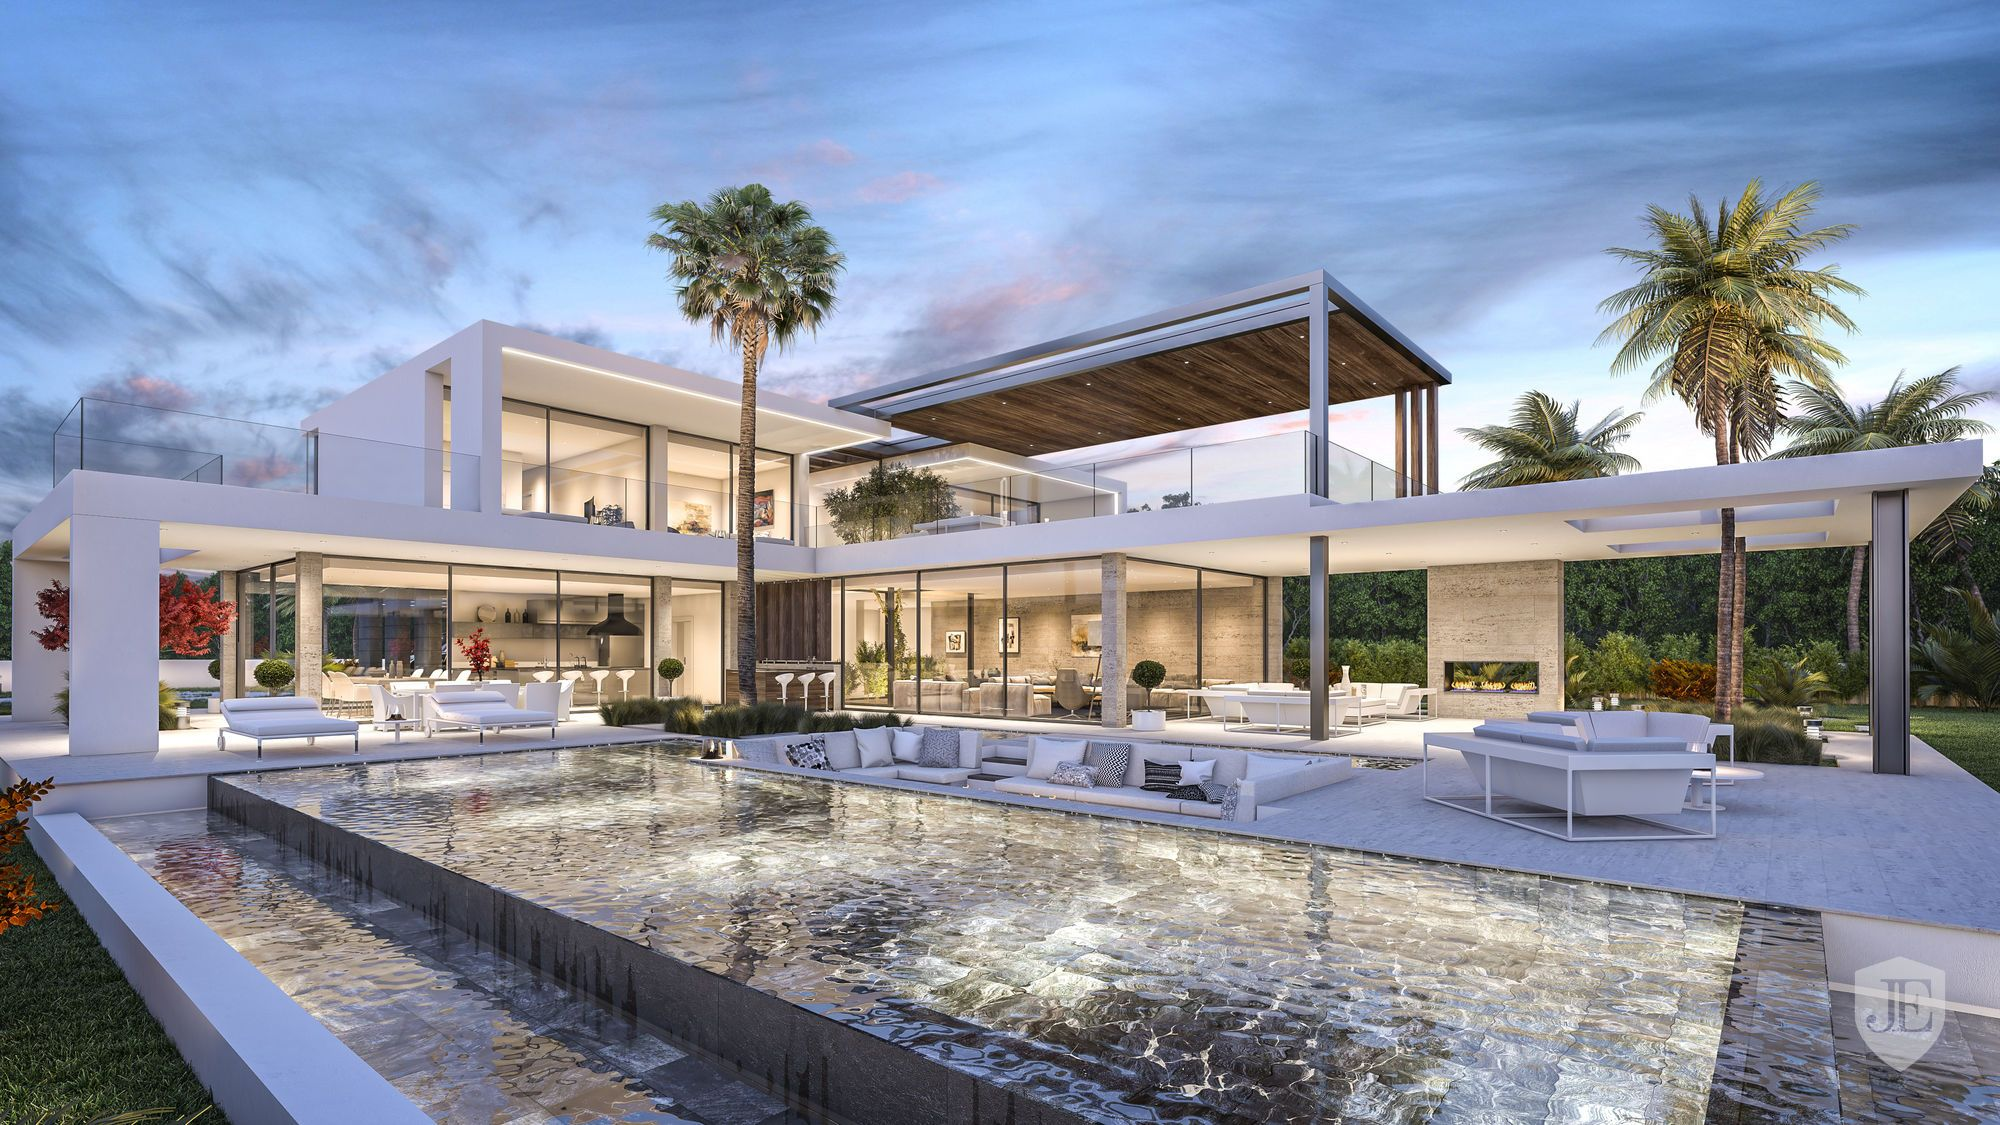 New Modern Luxury Villa Project In Marbella, Spain. In Marbella, Spain For  Sale On JamesEdition